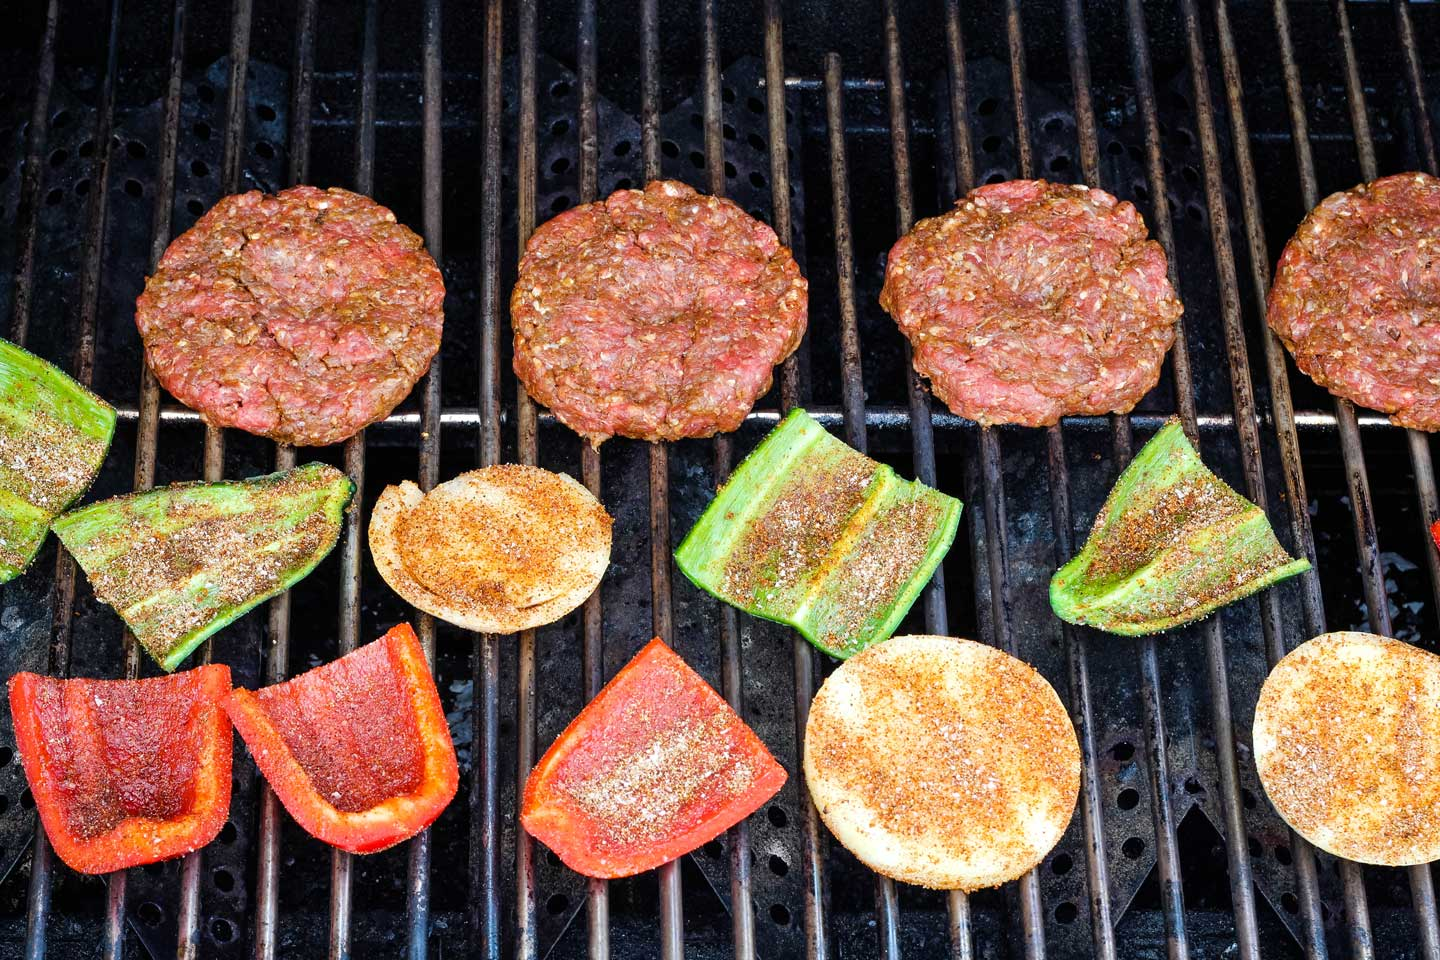 four hamburgers plus seasoned peppers and onions, cooking on outdoor grill